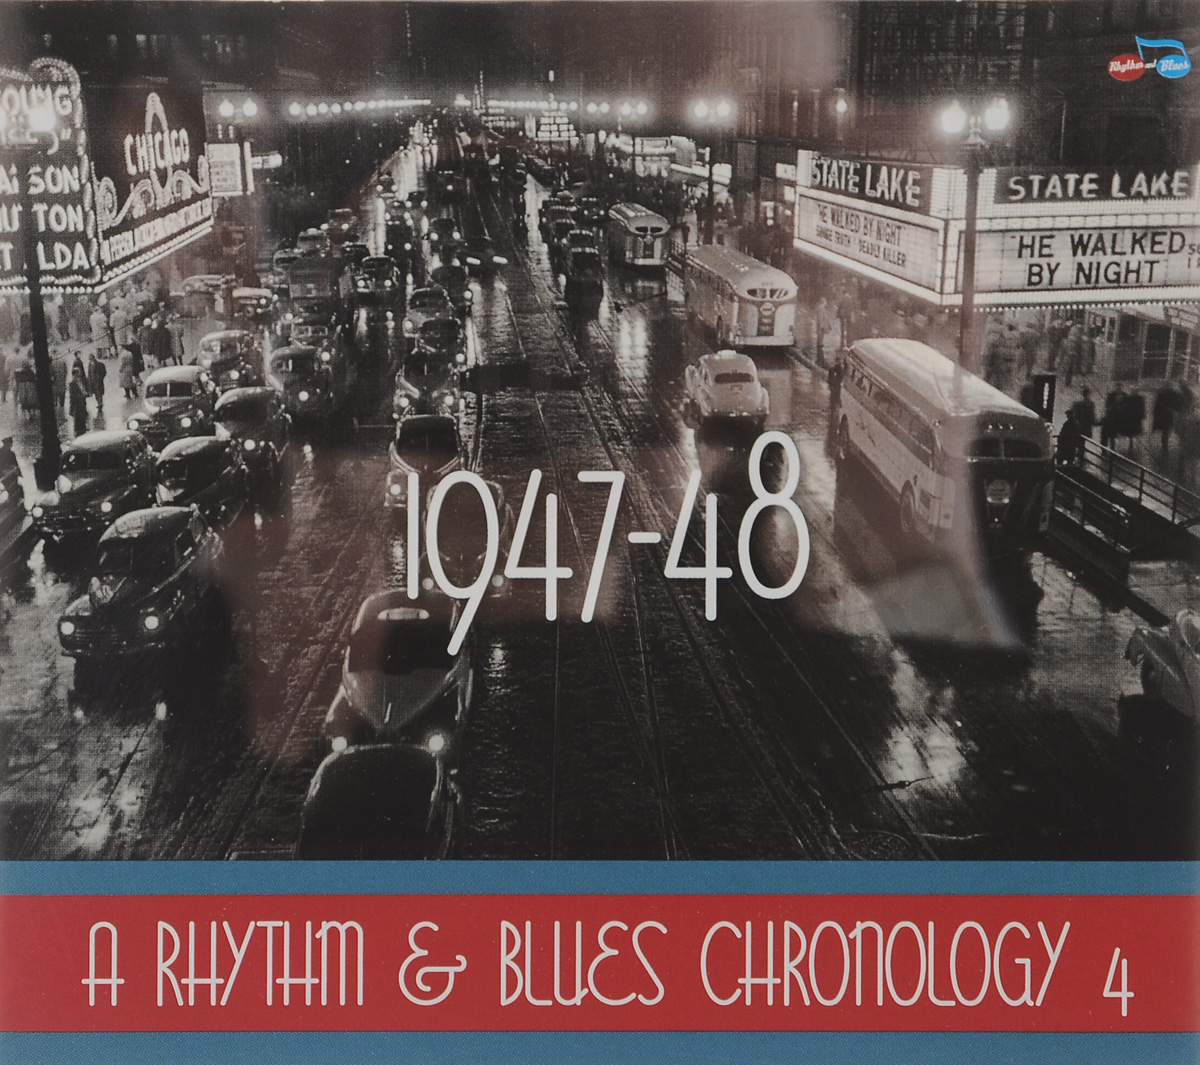 A Rhythm & Blues Chronology 4. 1947-48 (4 CD)